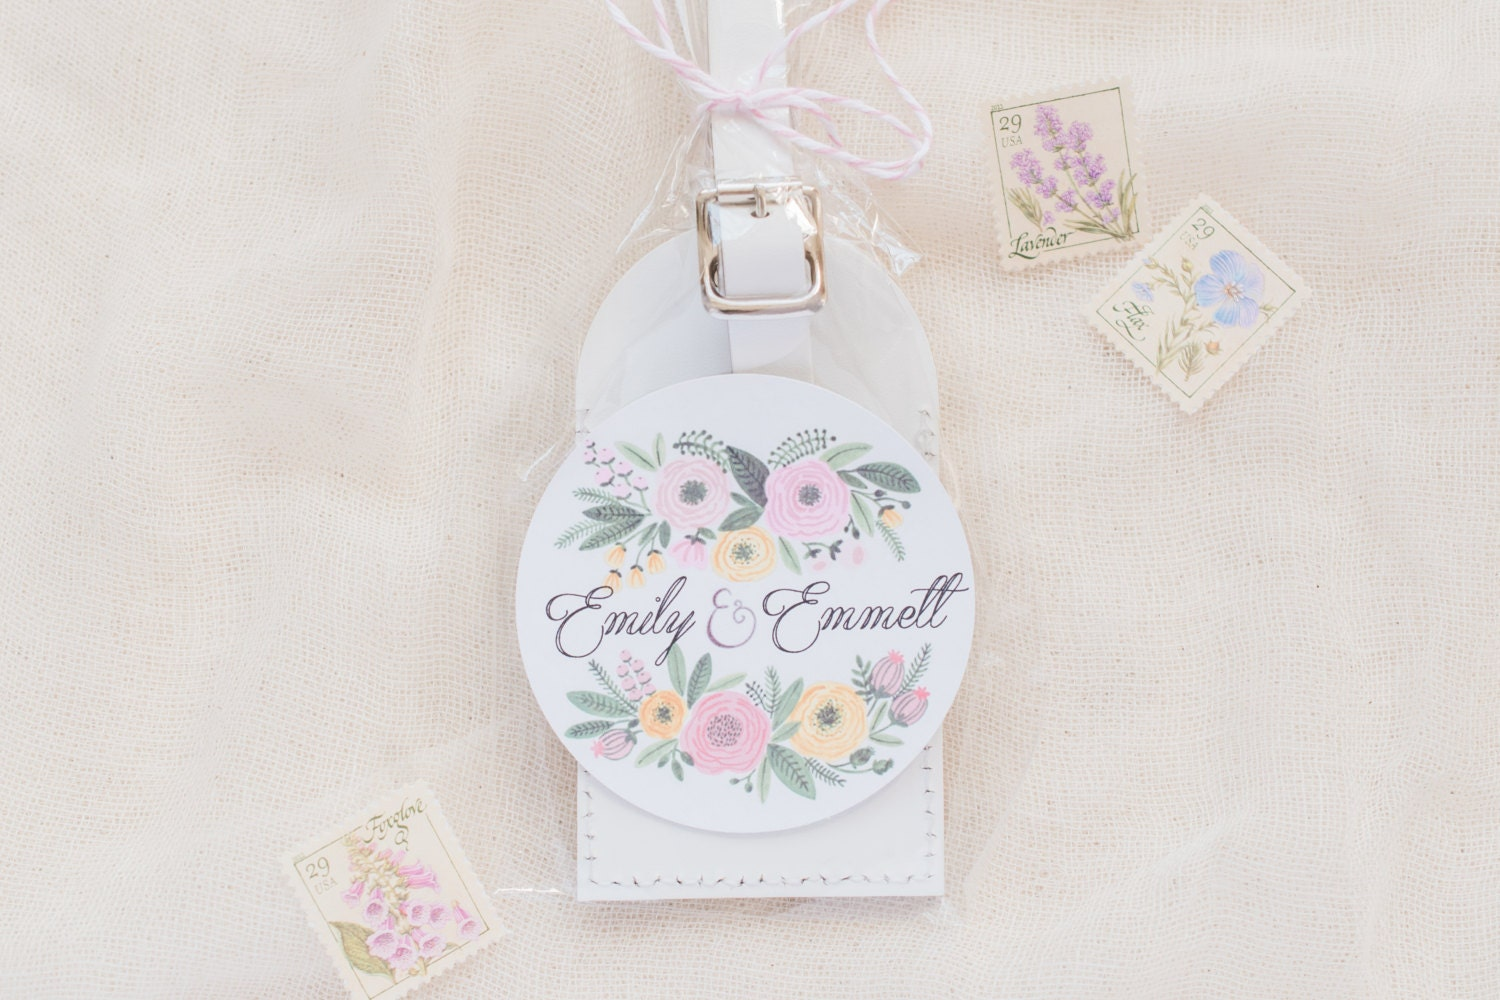 Wedding Favors Floral Bouquet Leather Luggage Tags